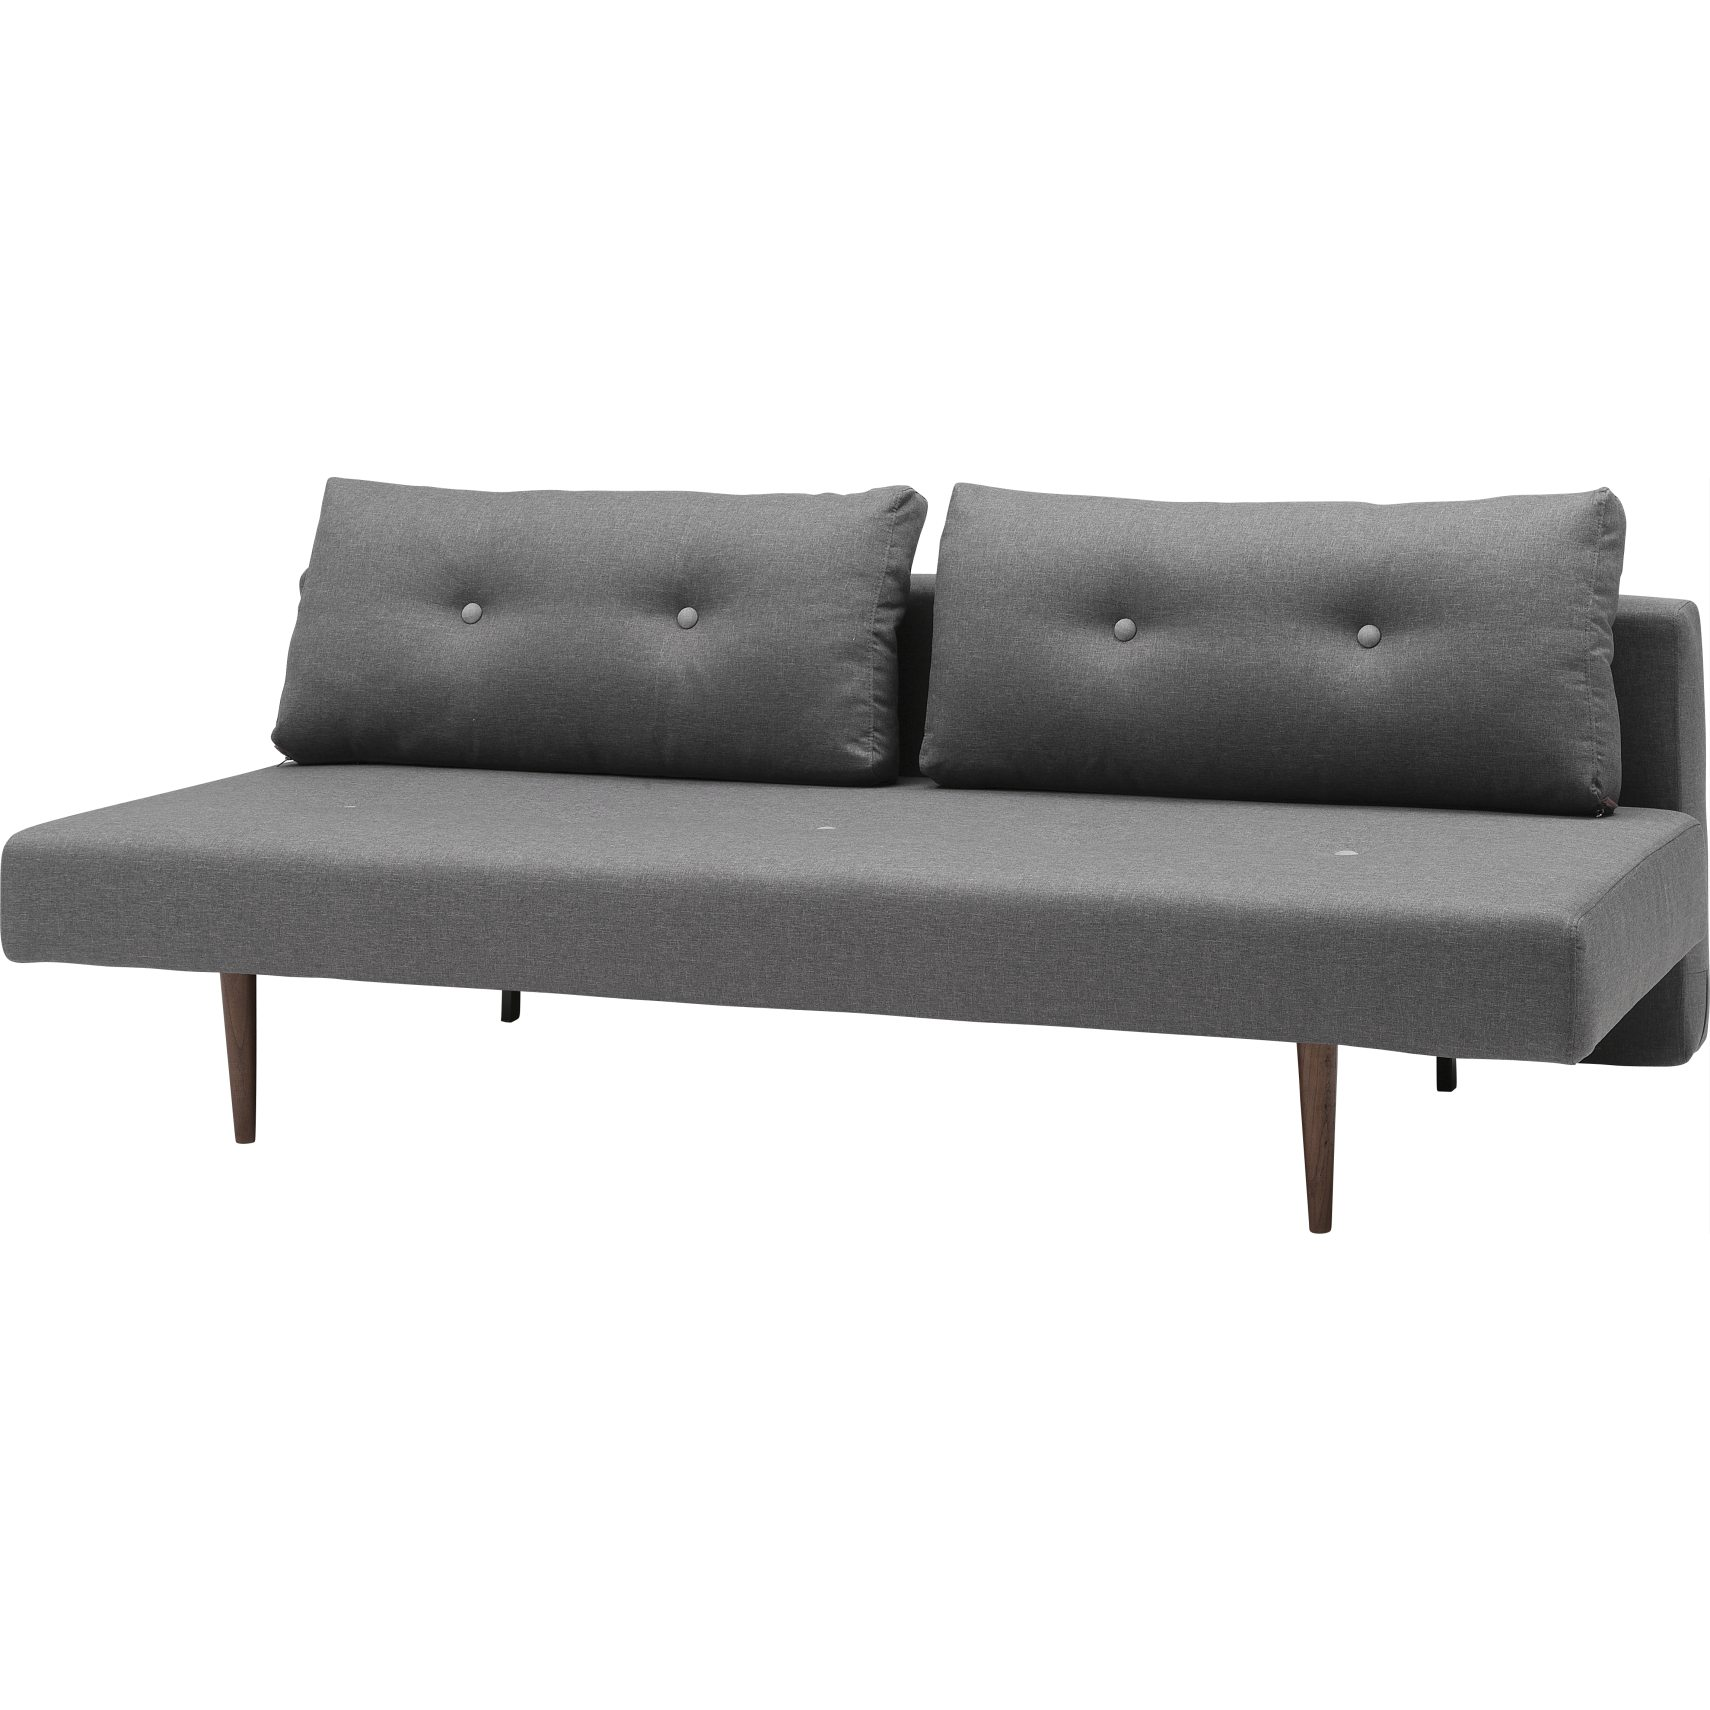 Innovation Living - Recast Plus Sovesofa - Flashtex 216 Dark Grey og mørkt træ